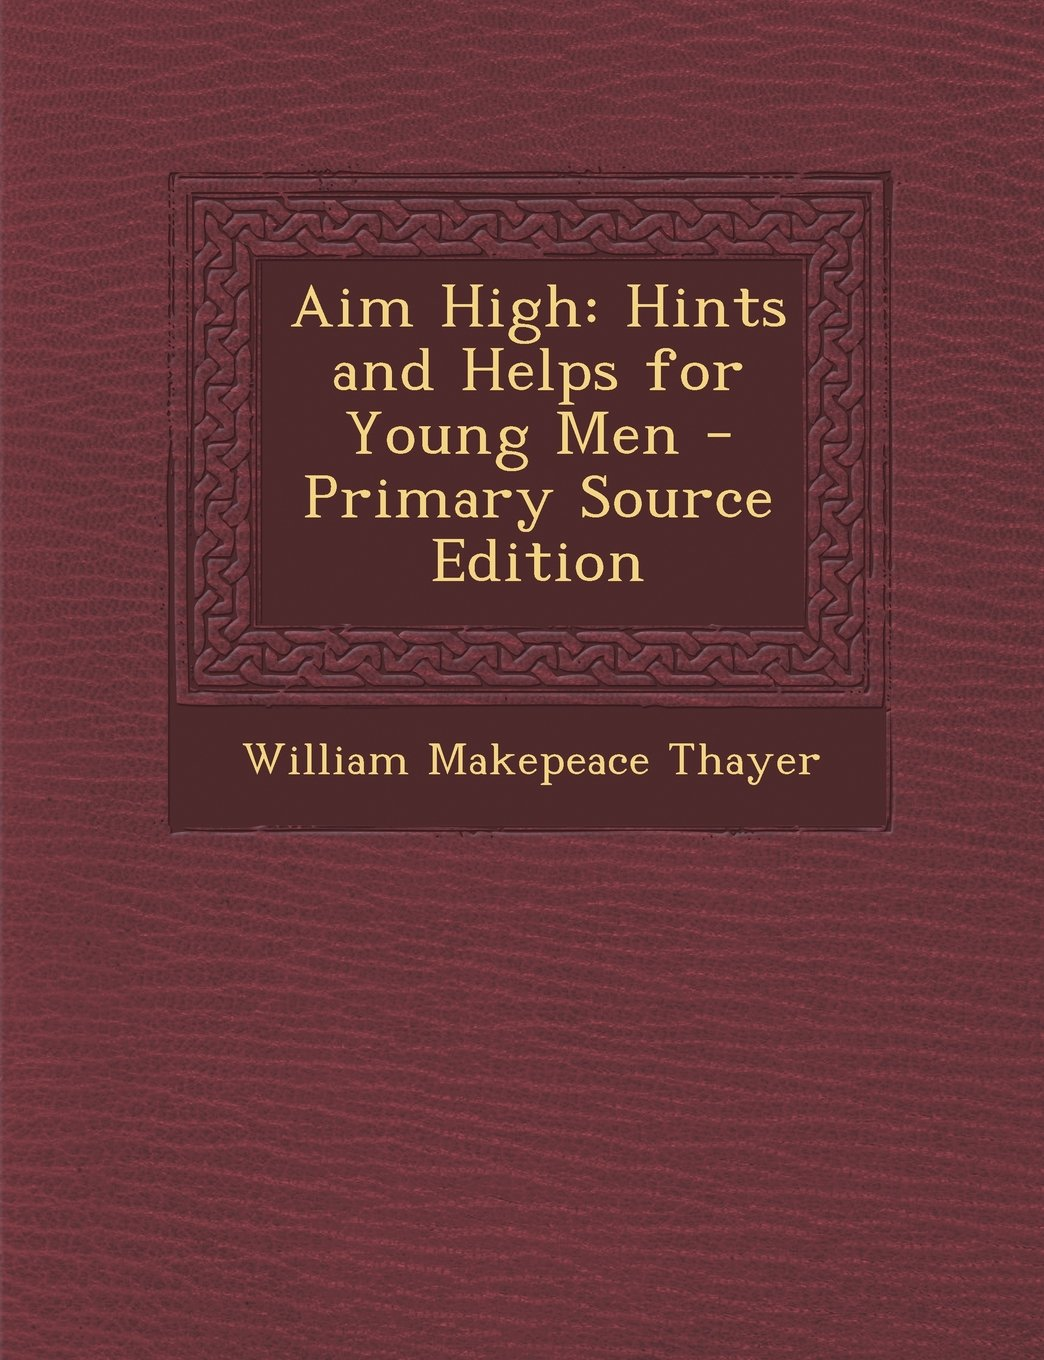 Read Online Aim High: Hints and Helps for Young Men - Primary Source Edition pdf